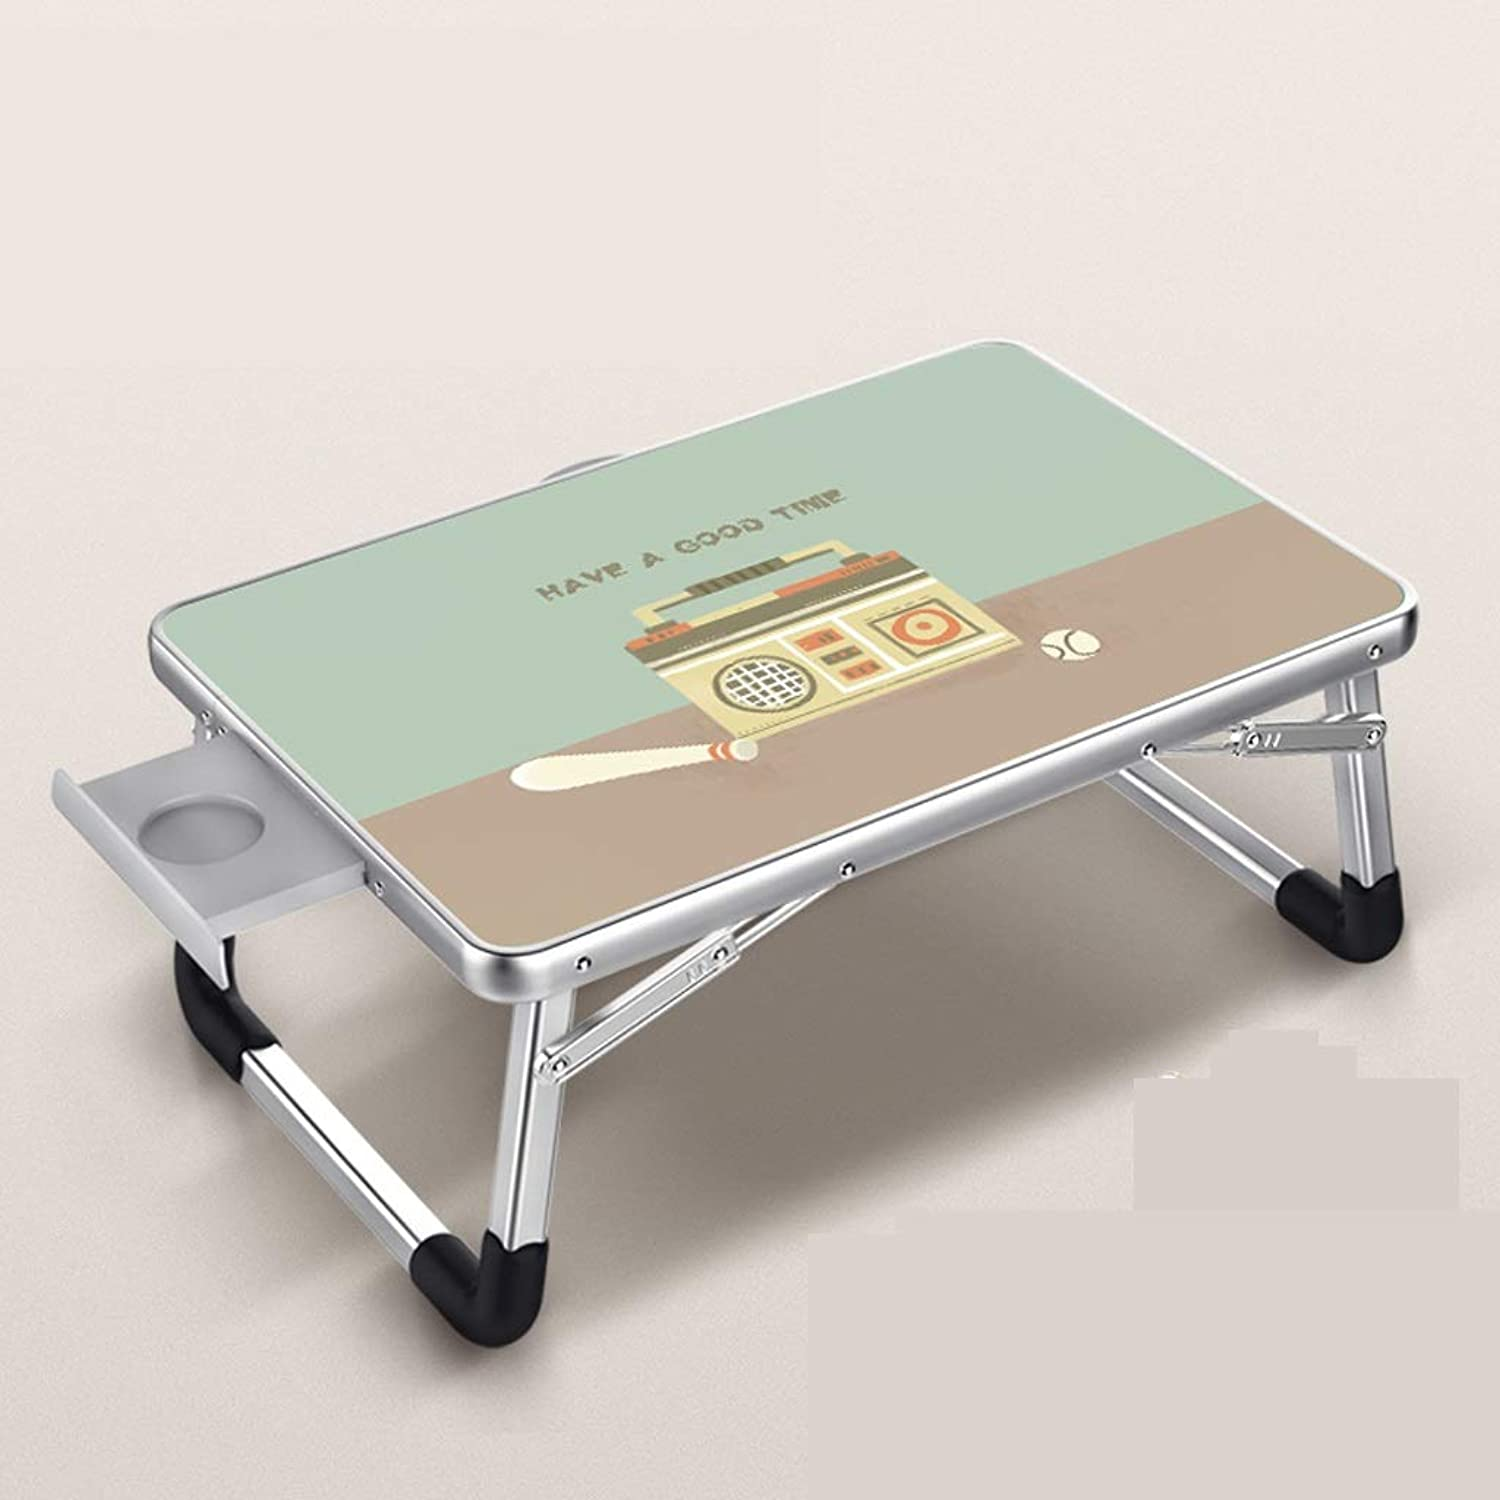 JSFQ Folding Table Bed Small Table Household Portable Folding Table Lazy Student Dormitory Table Metal Folding Table Folding Table (Size   70×50cm)